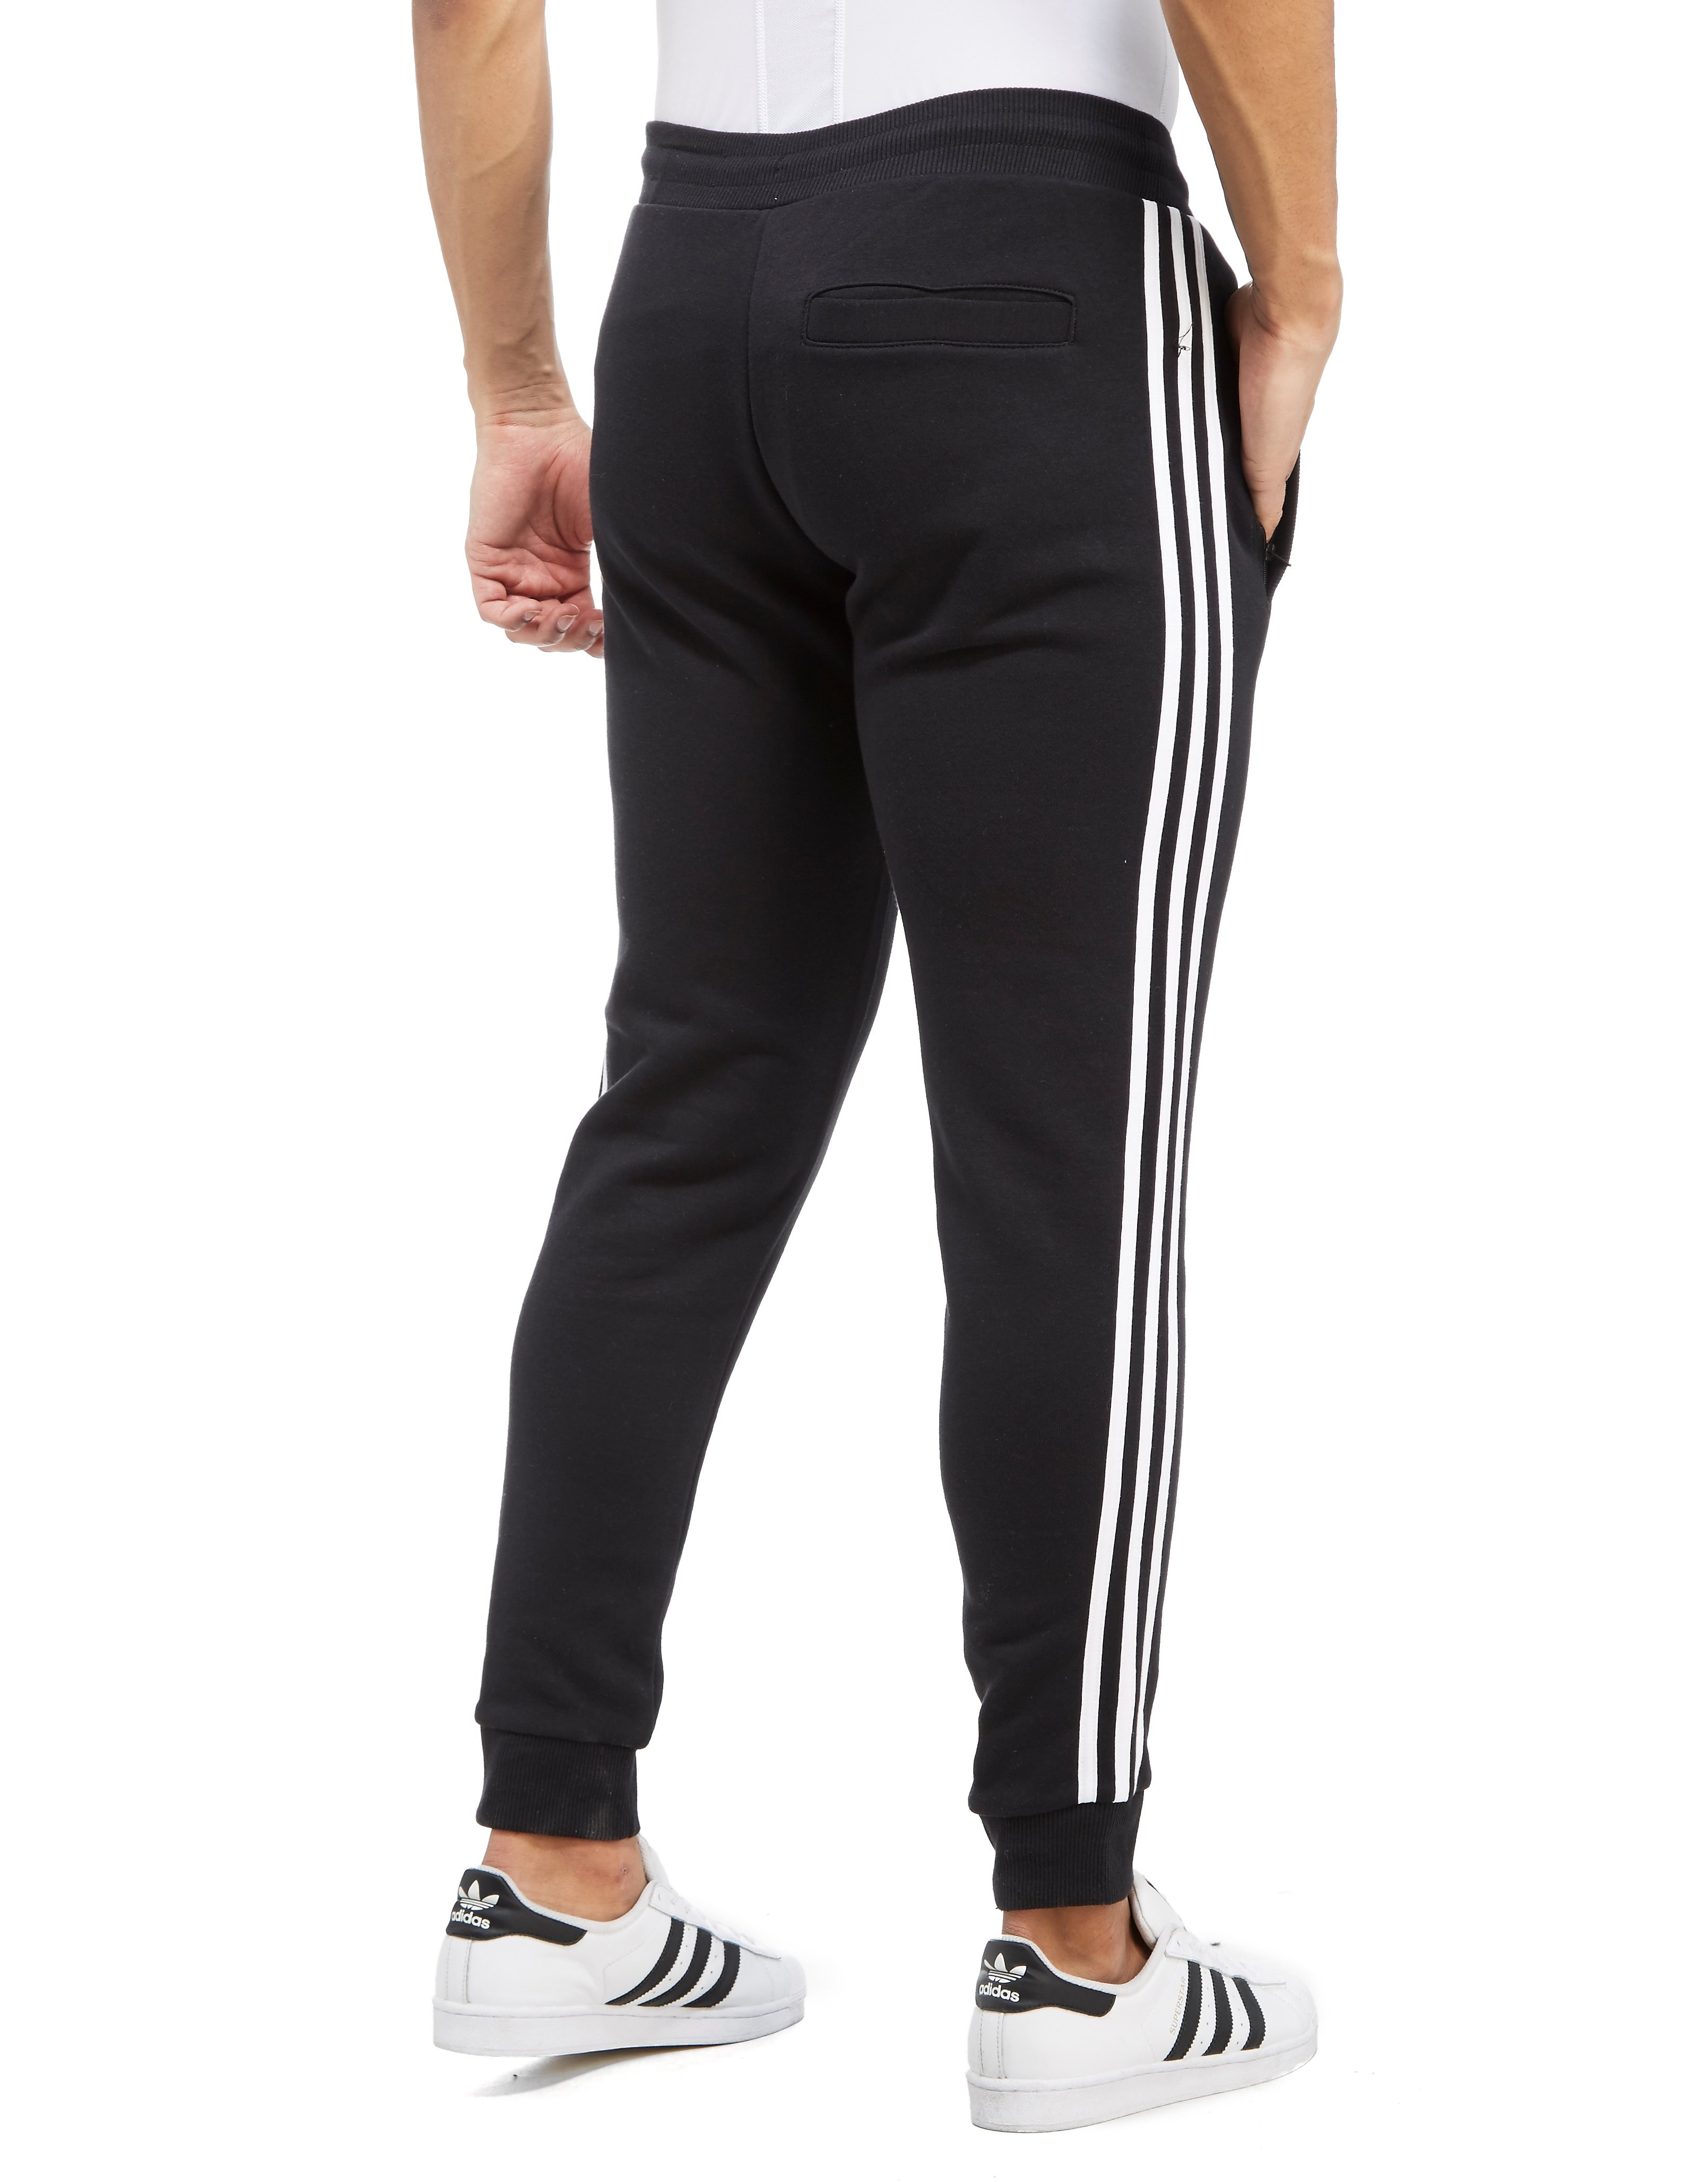 adidas Originals California Pants